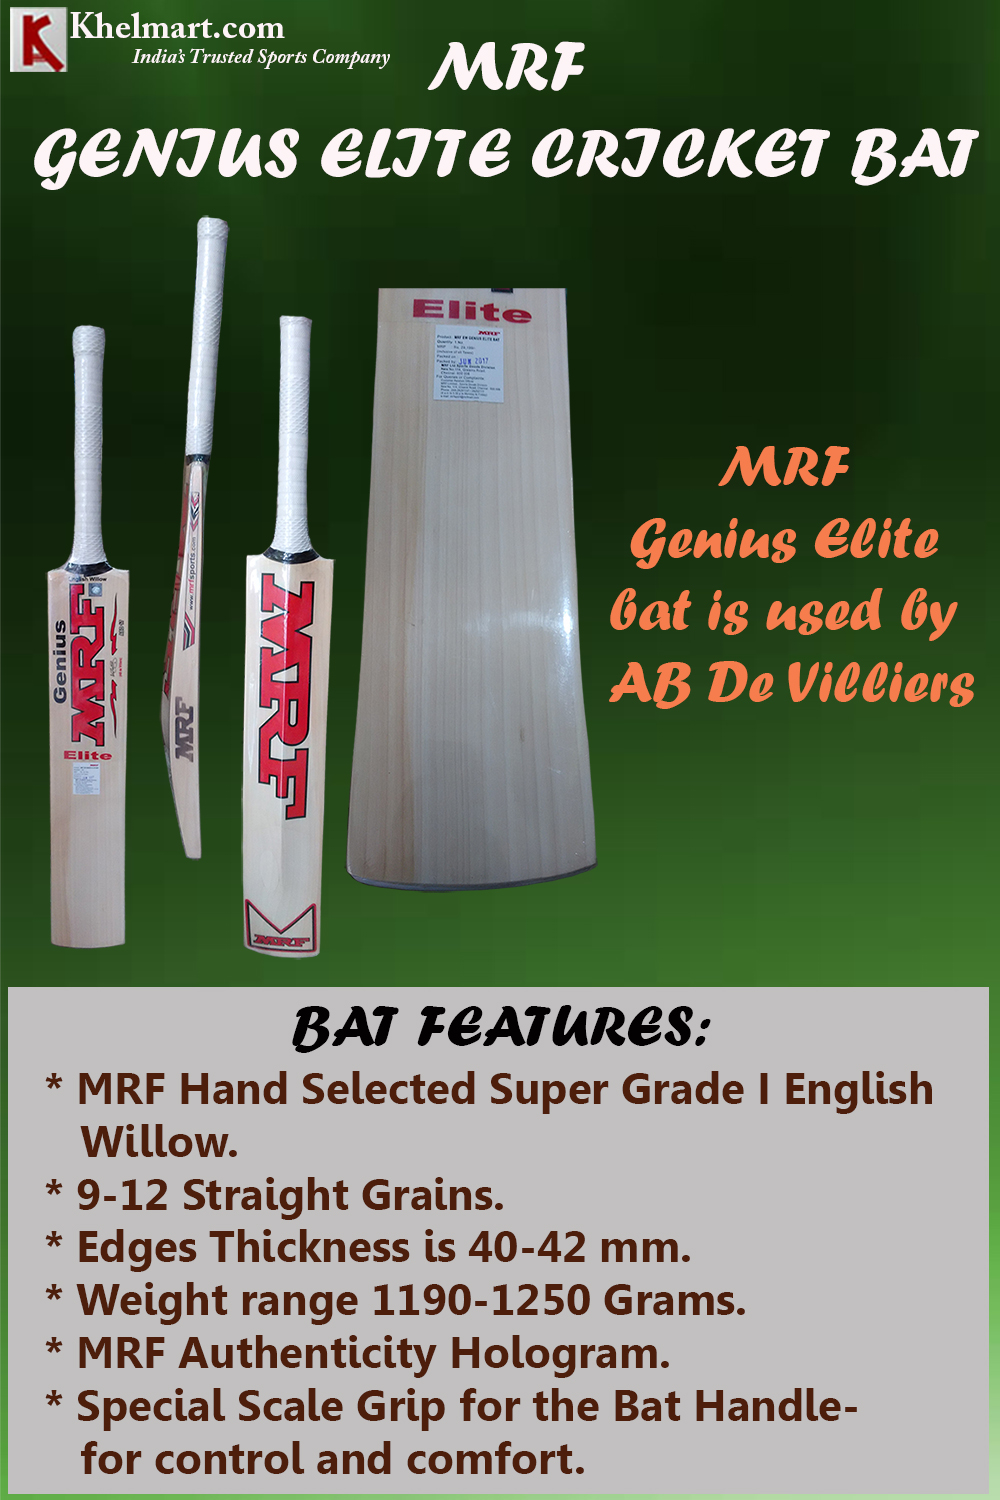 MRF GENIUS ELITE_4